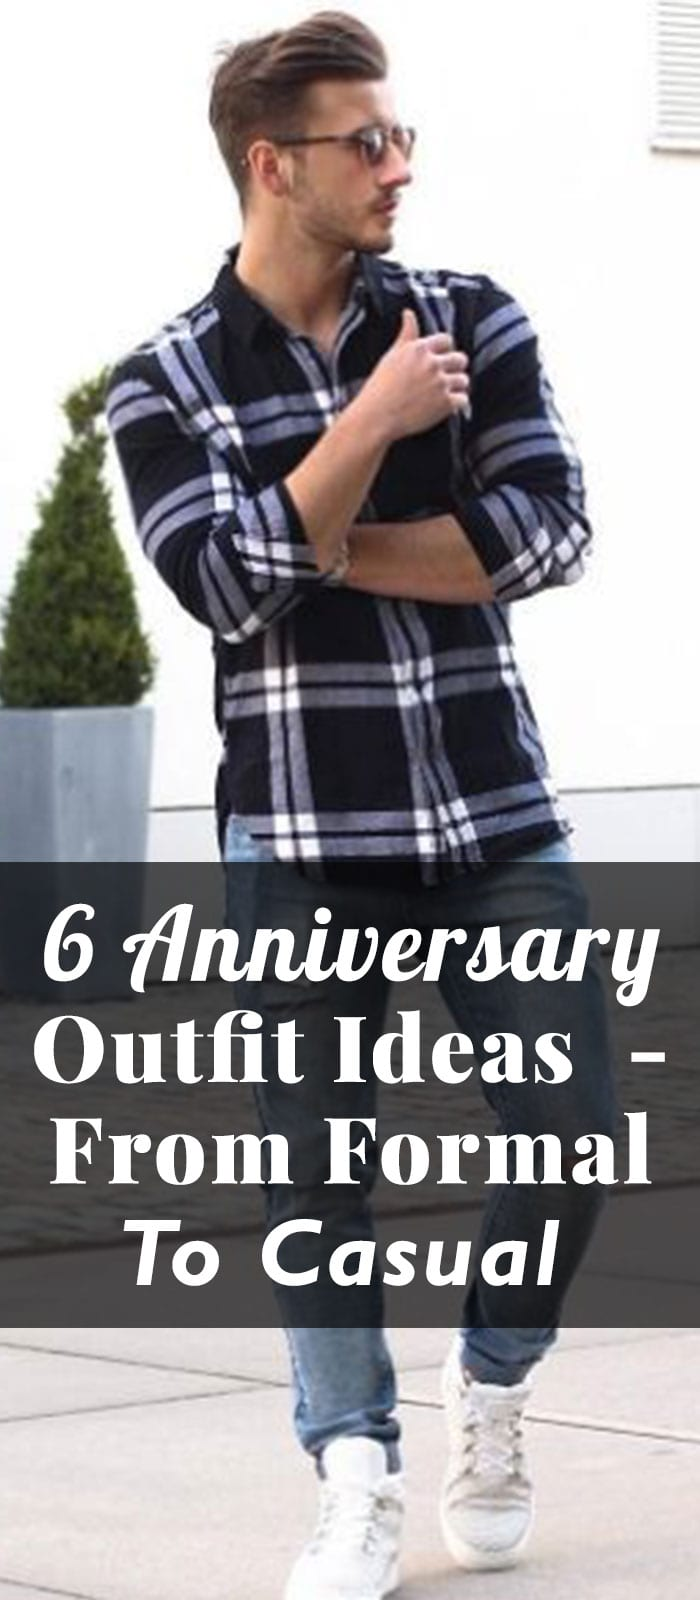 6 Anniversary Outfit Ideas - From Formal To Casual